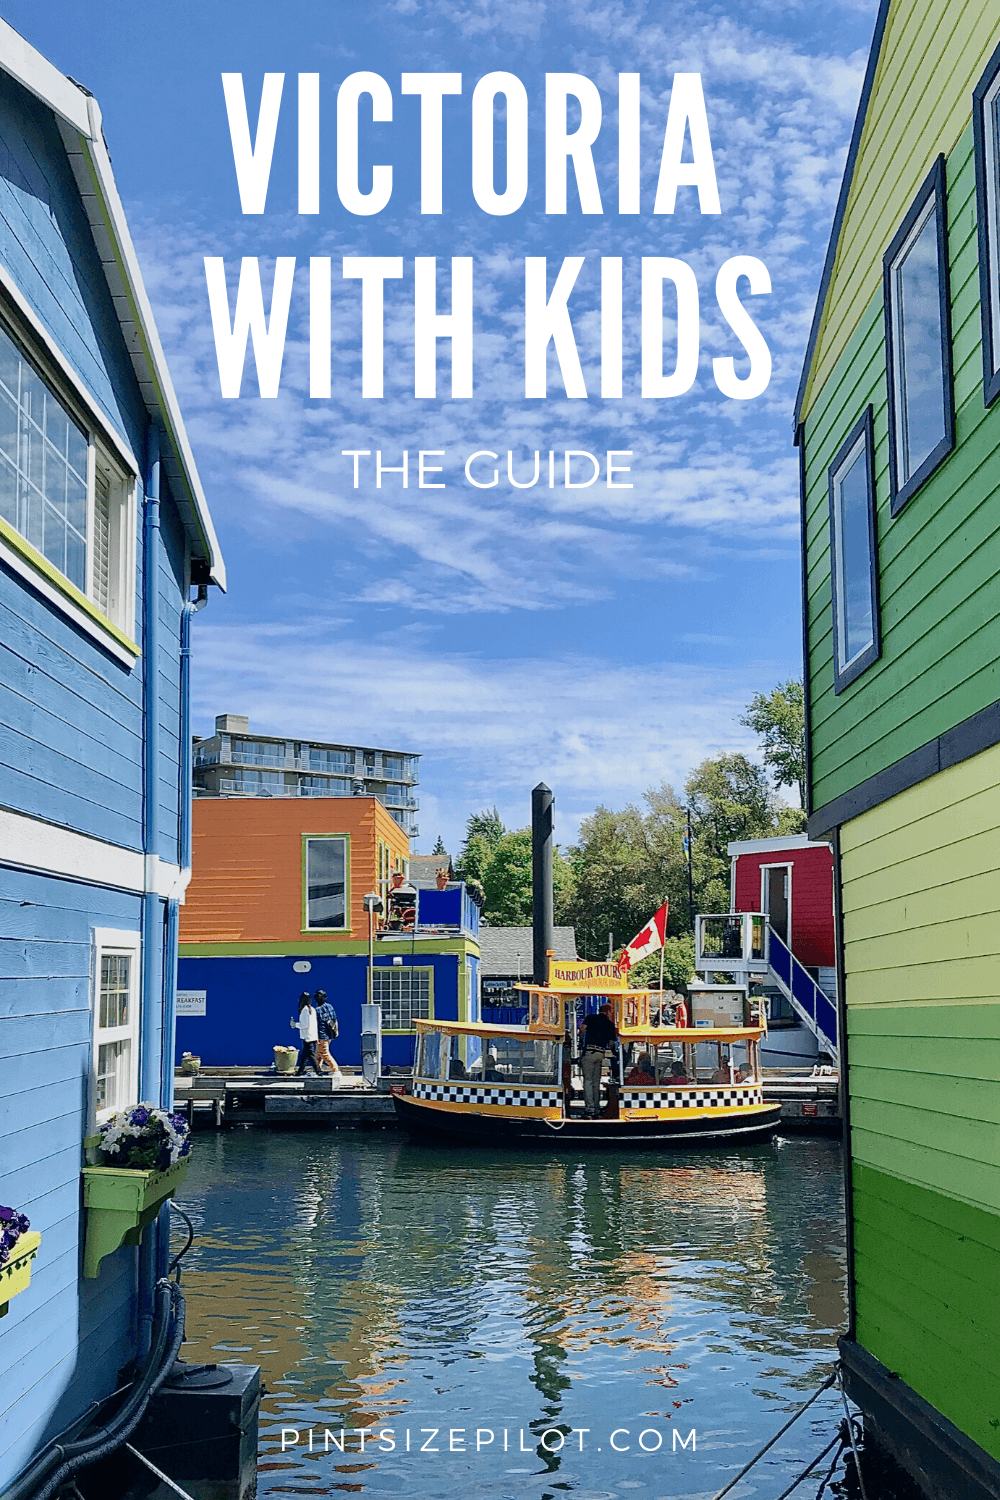 Victoria For Kids Guide 15 Fun Things To Do In Victoria With Kids